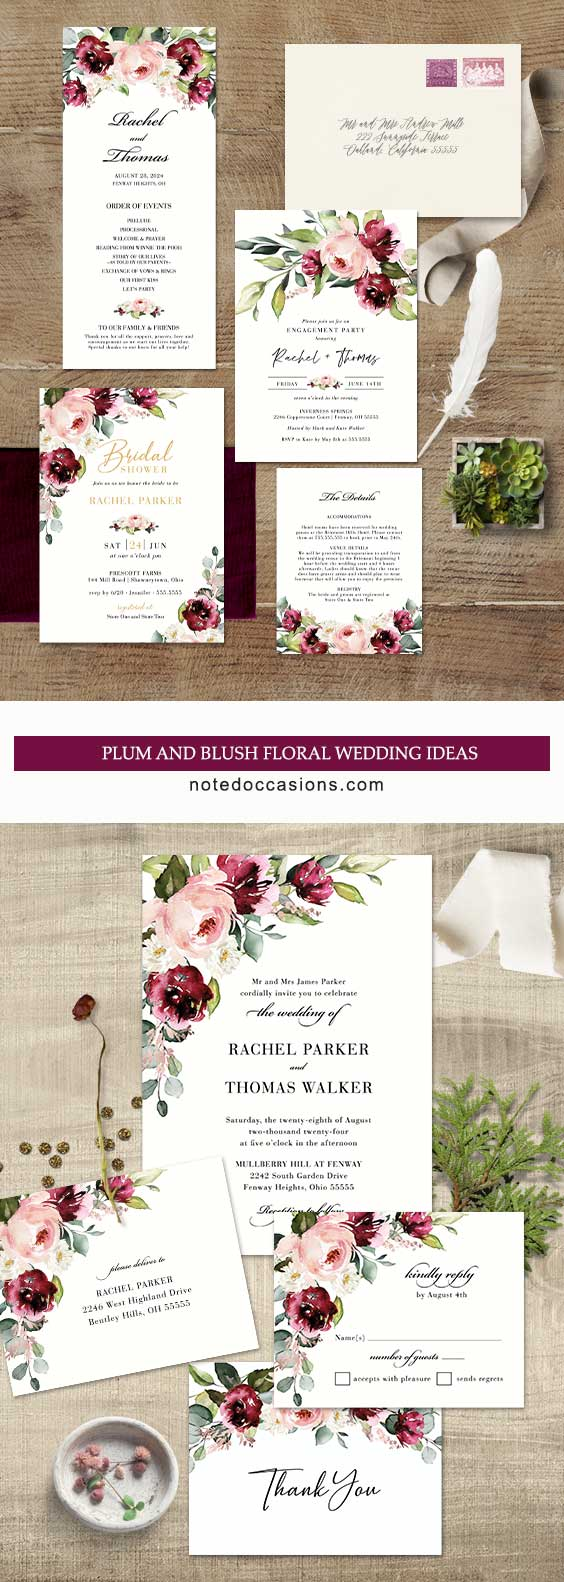 Plum Floral Wedding Invitation With Blush Accents